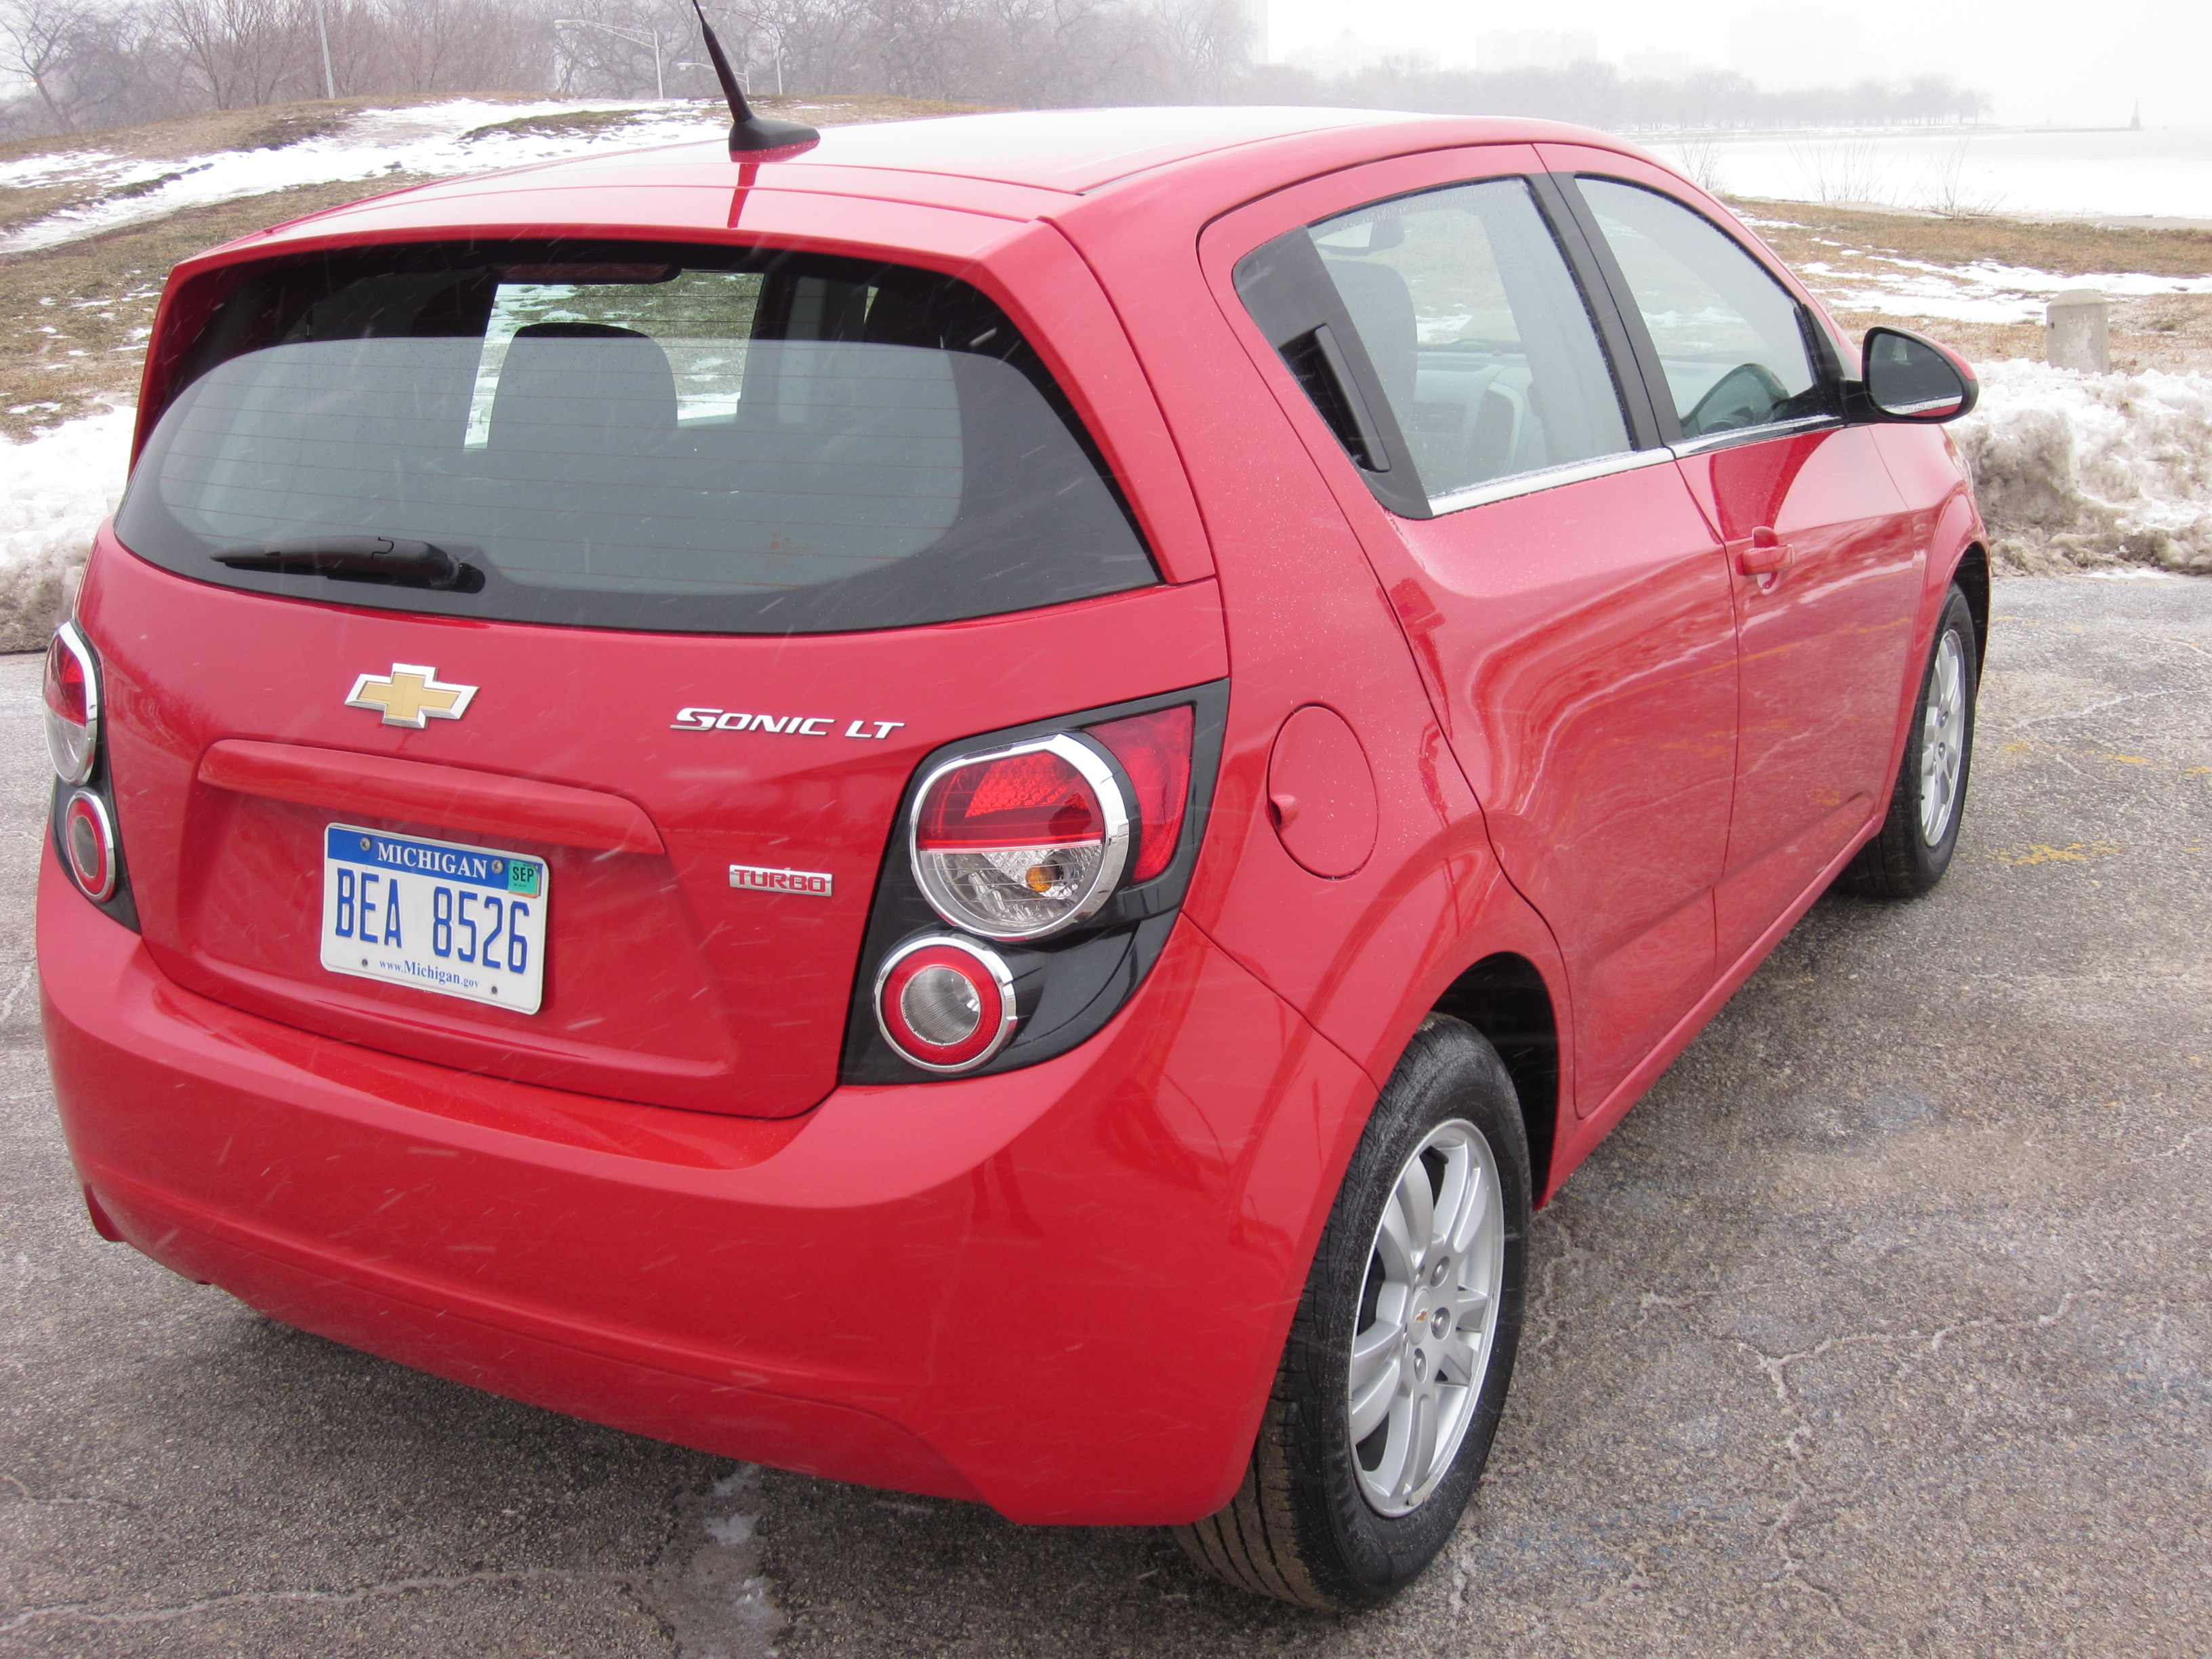 2012 chevrolet sonic lt turbo review a bowtie pocket. Black Bedroom Furniture Sets. Home Design Ideas